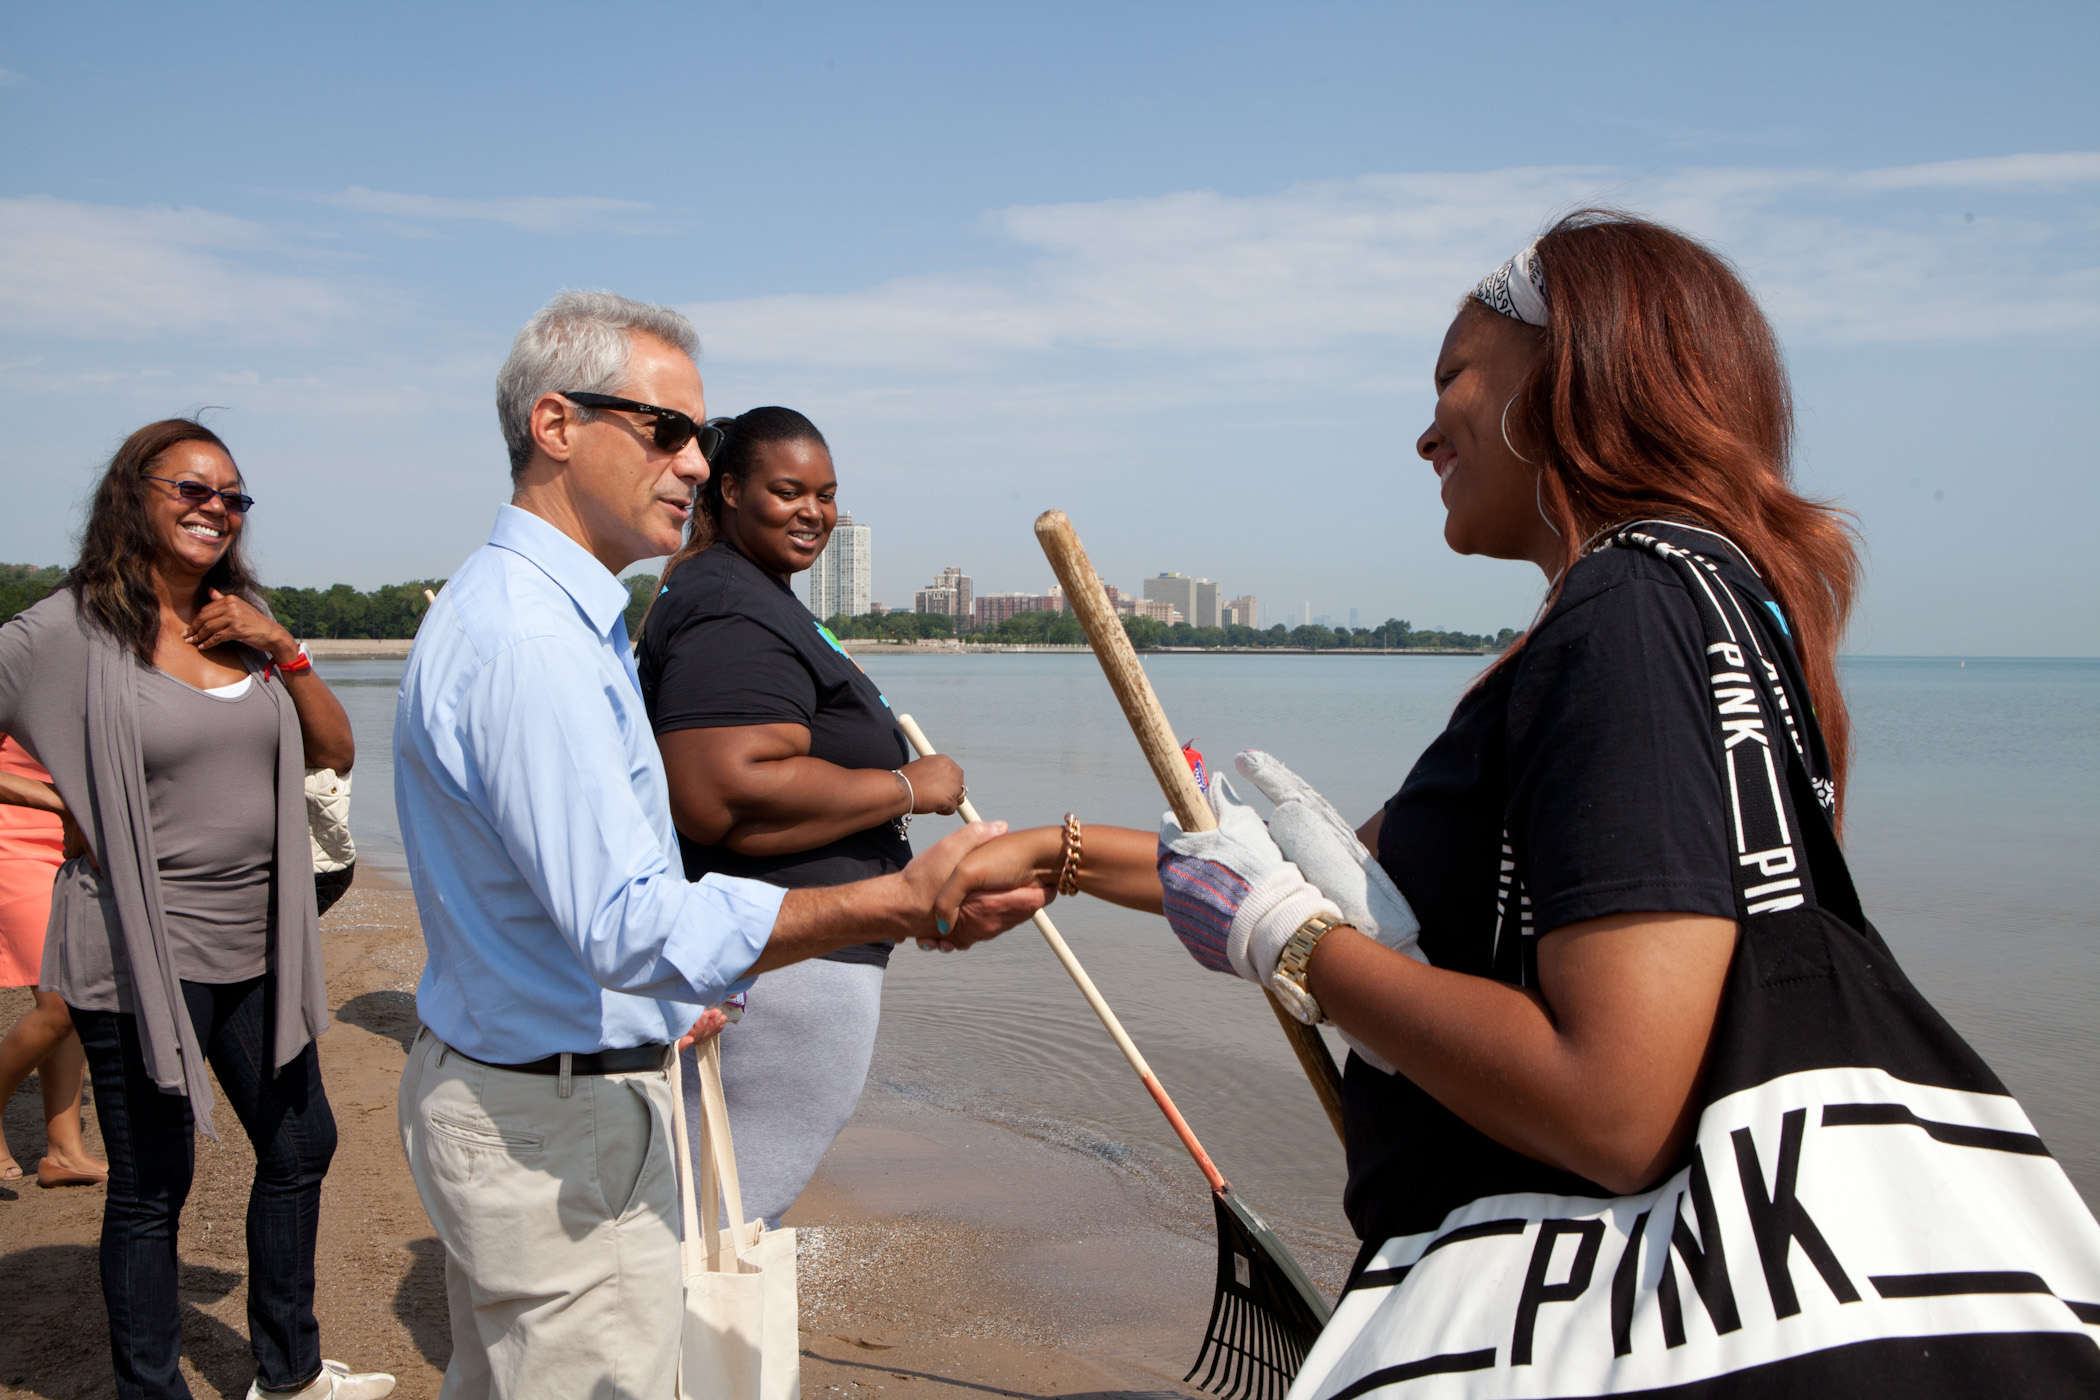 Mayor Emanuel Joins One Summer Chicago Youth 'Pitch In' To Clean City Parks